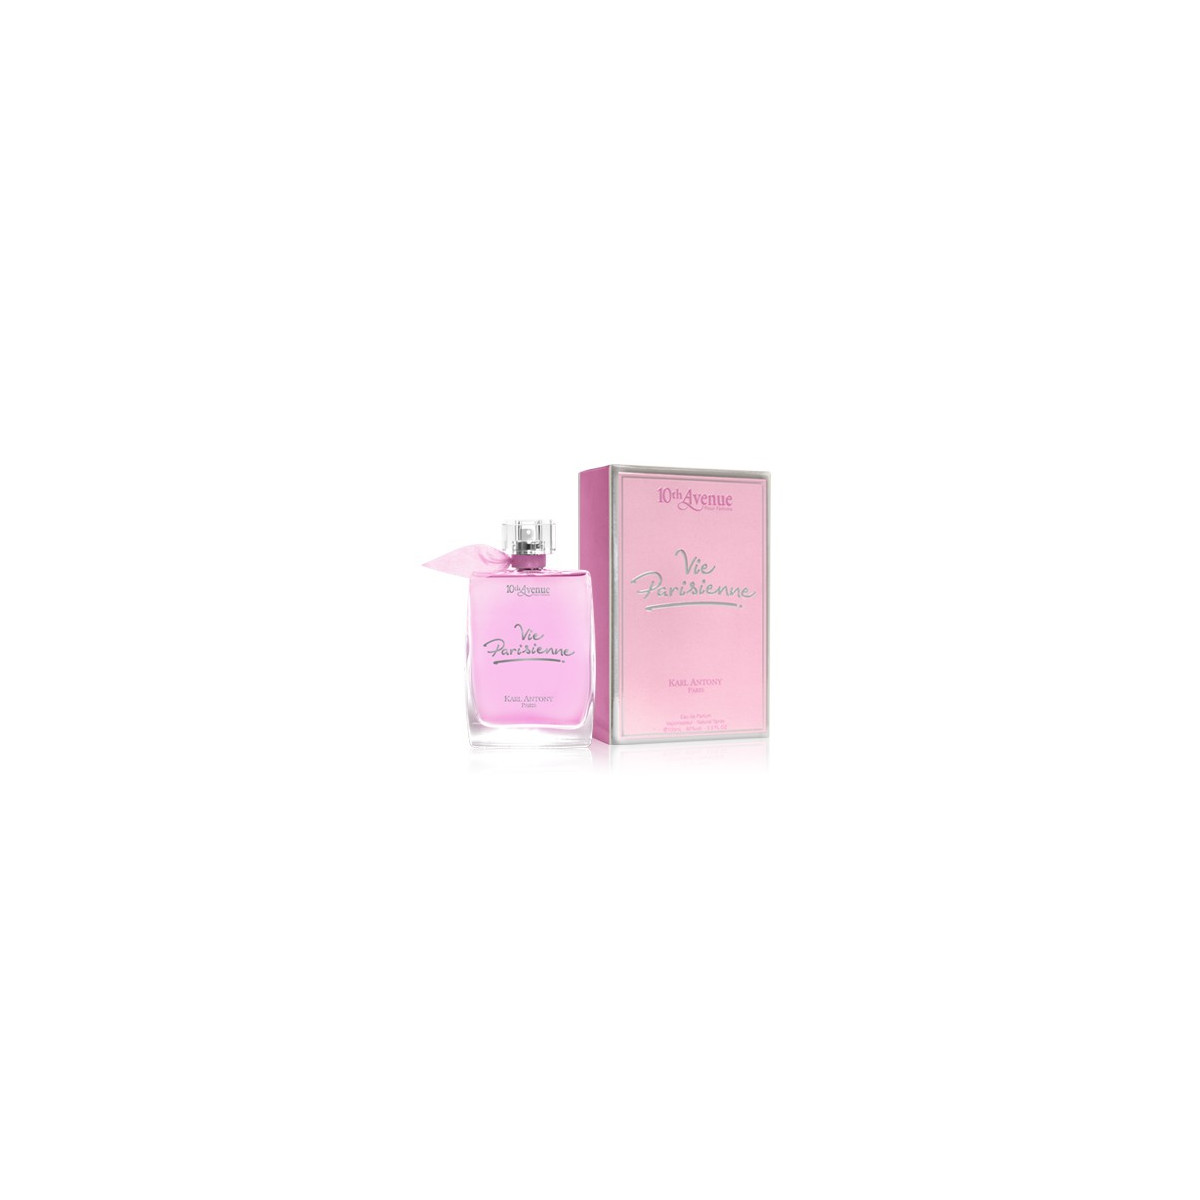 VIE PARISIENNE 100ml 10th Avenue